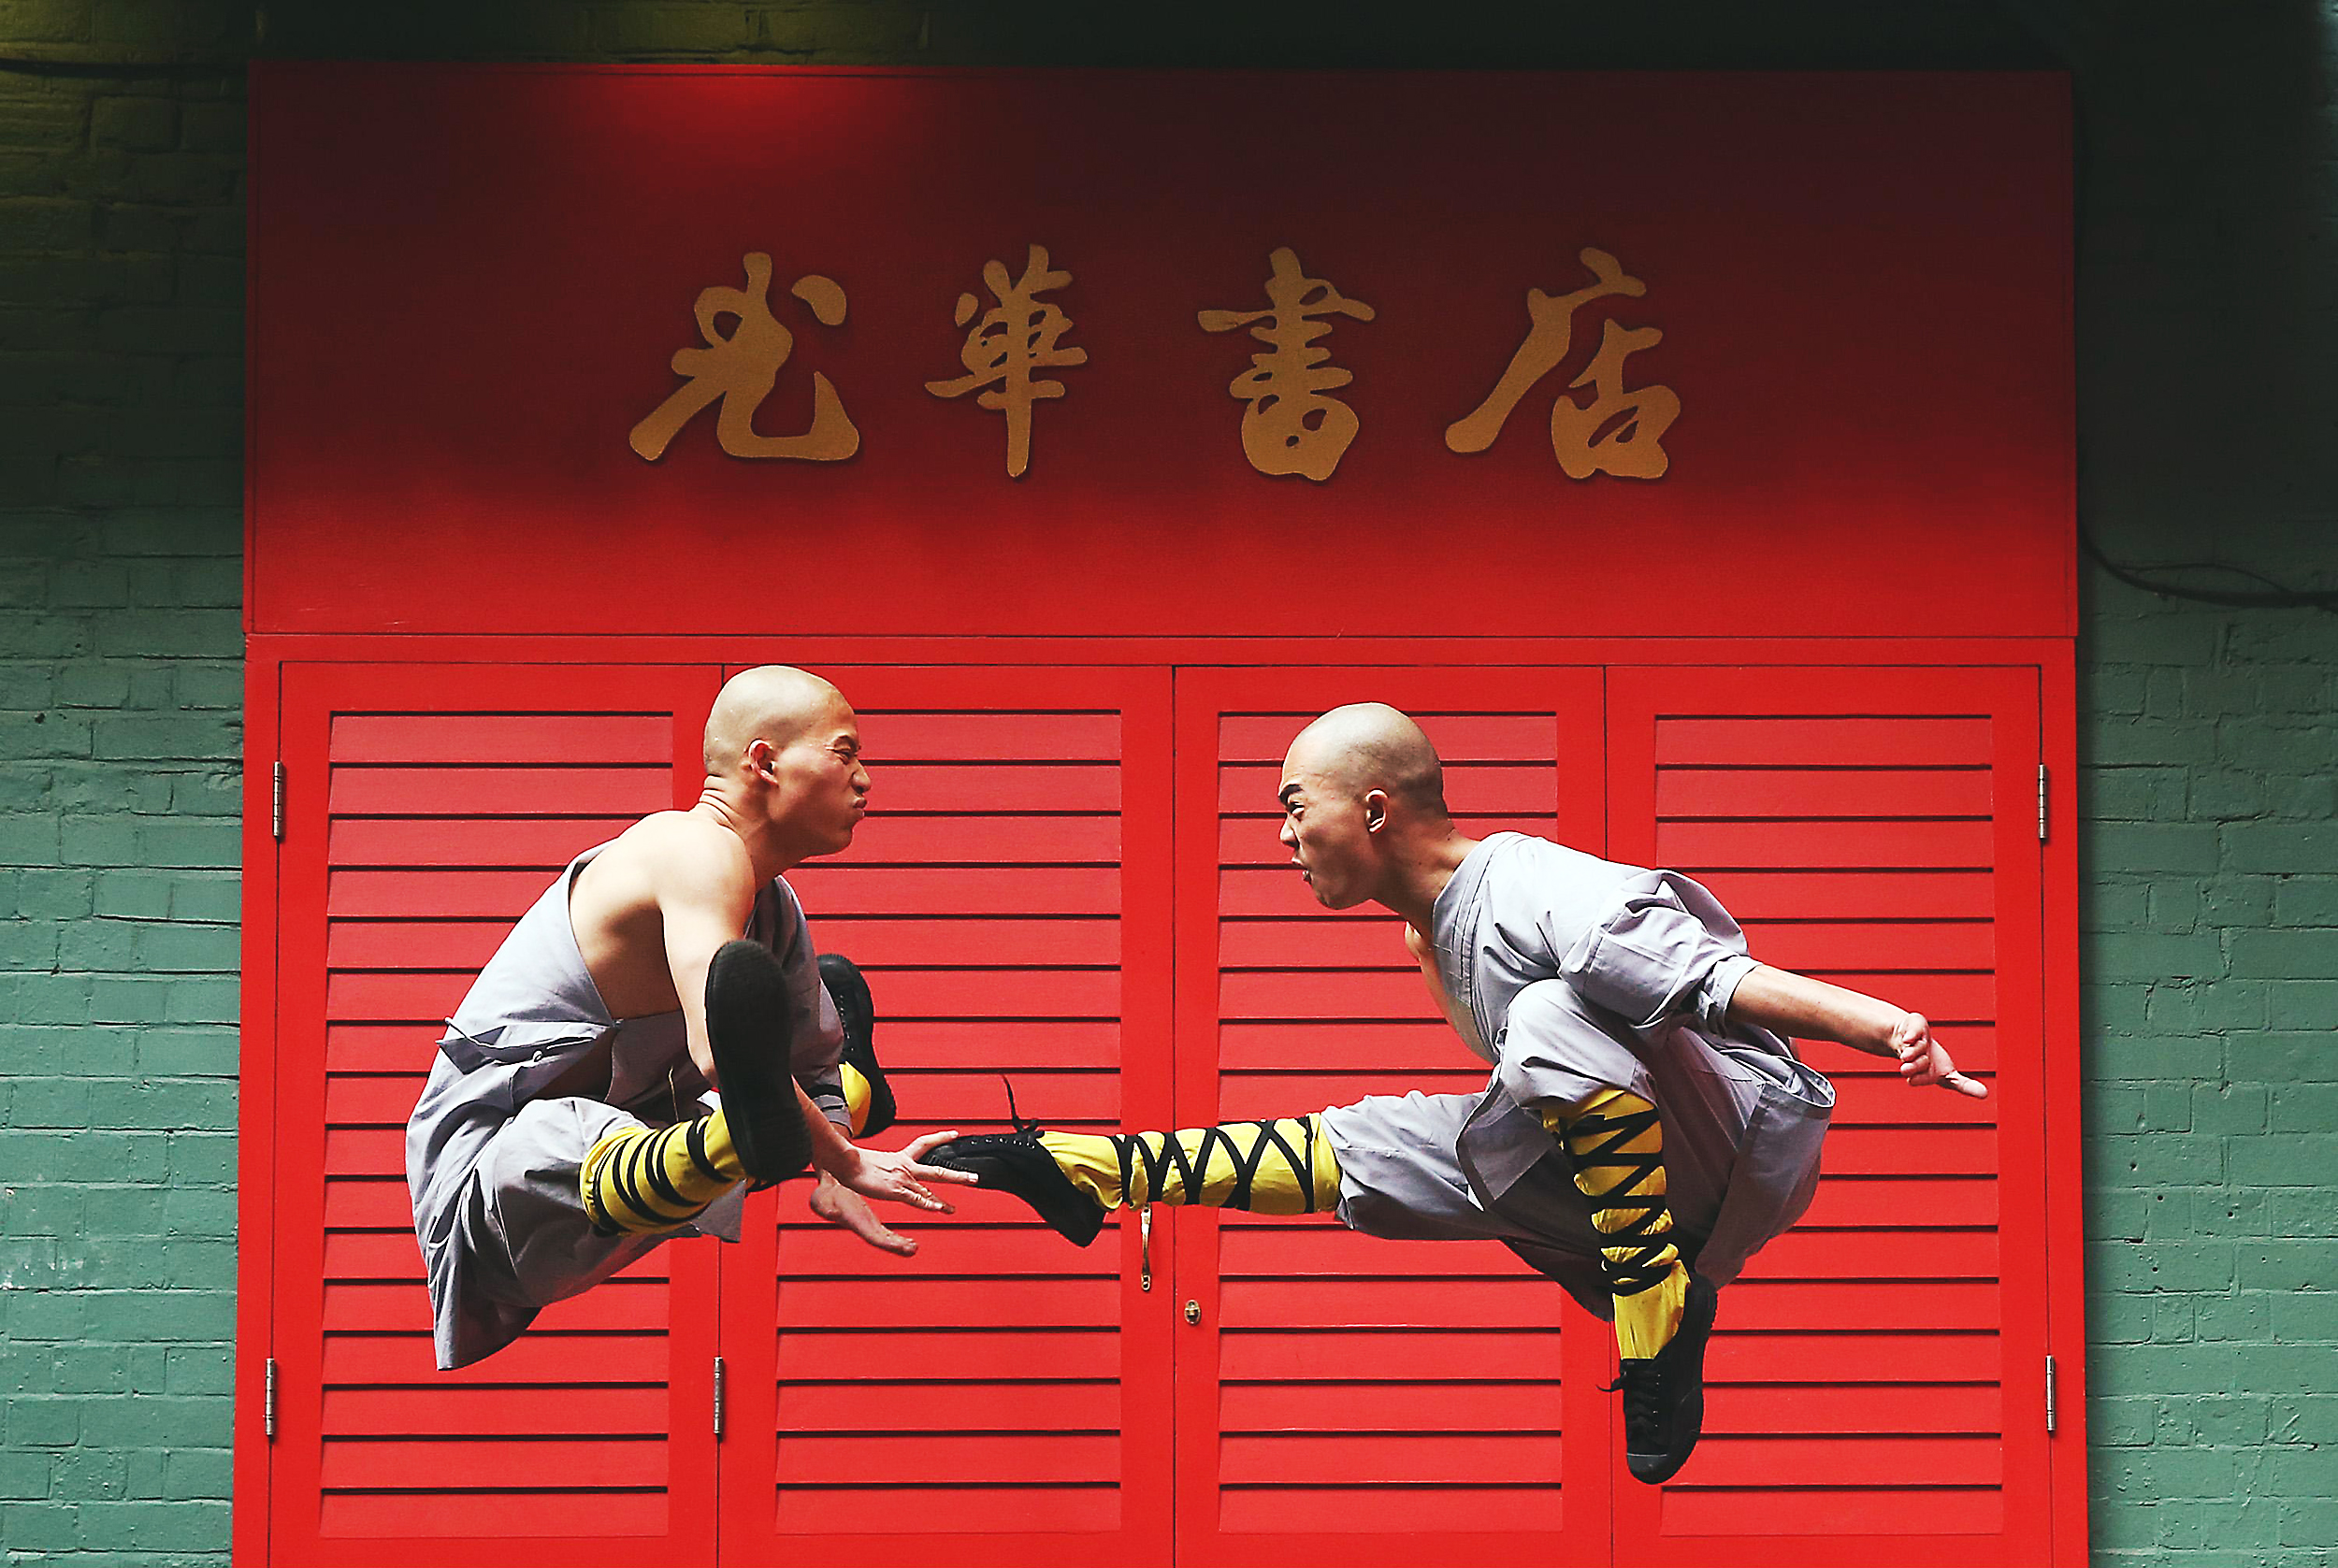 https://i0.wp.com/www.japantimes.co.jp/wp-content/uploads/2015/02/f-shaolin-a-20150301.jpg